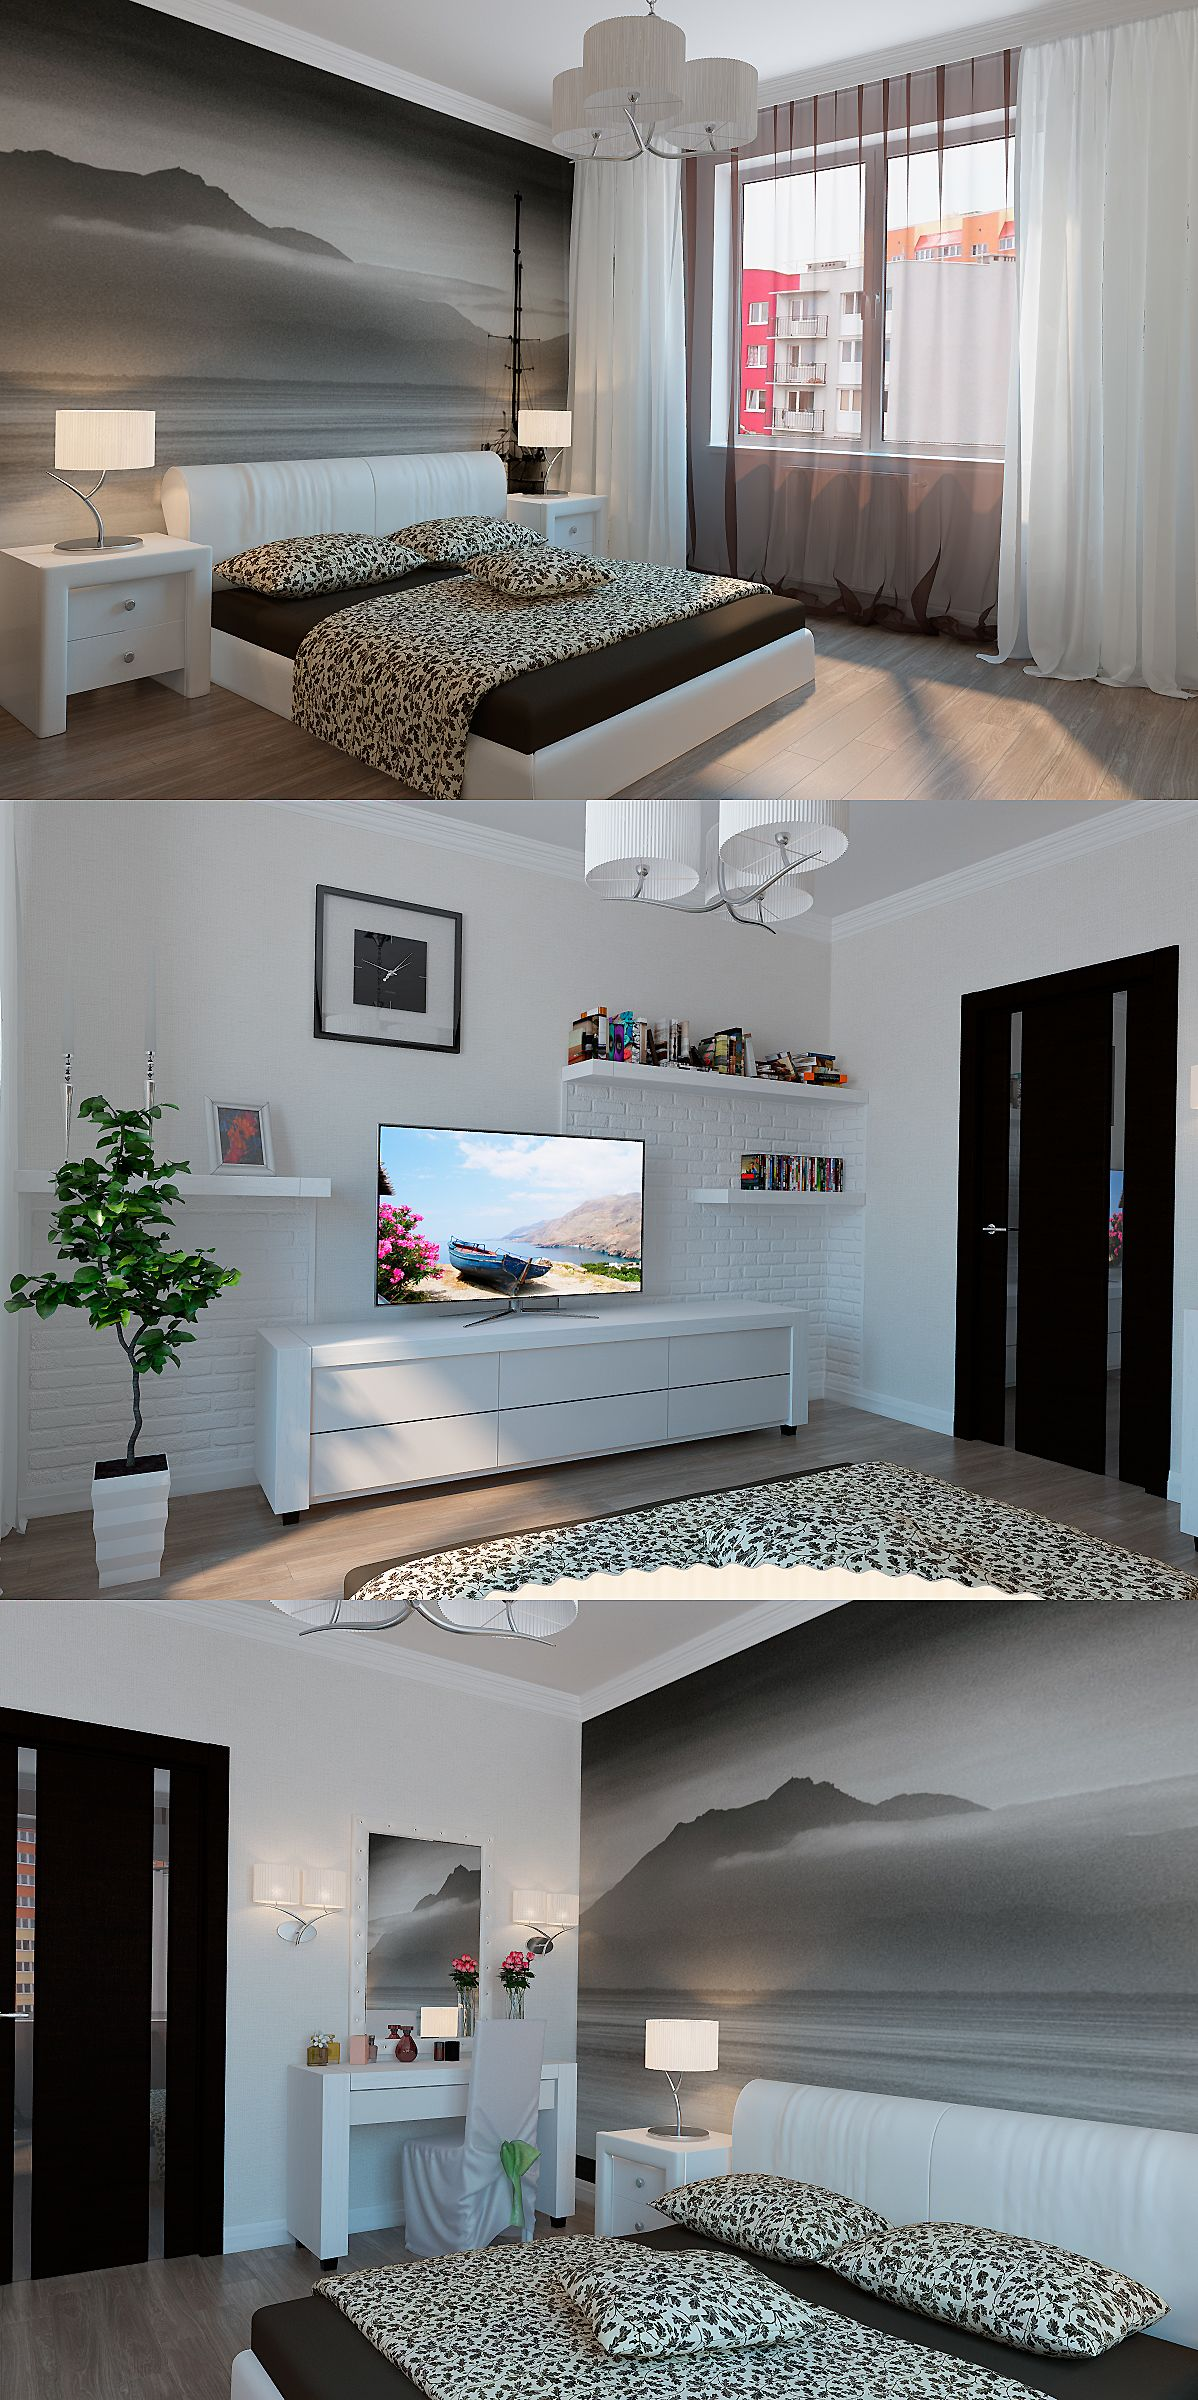 Urban style bedroom